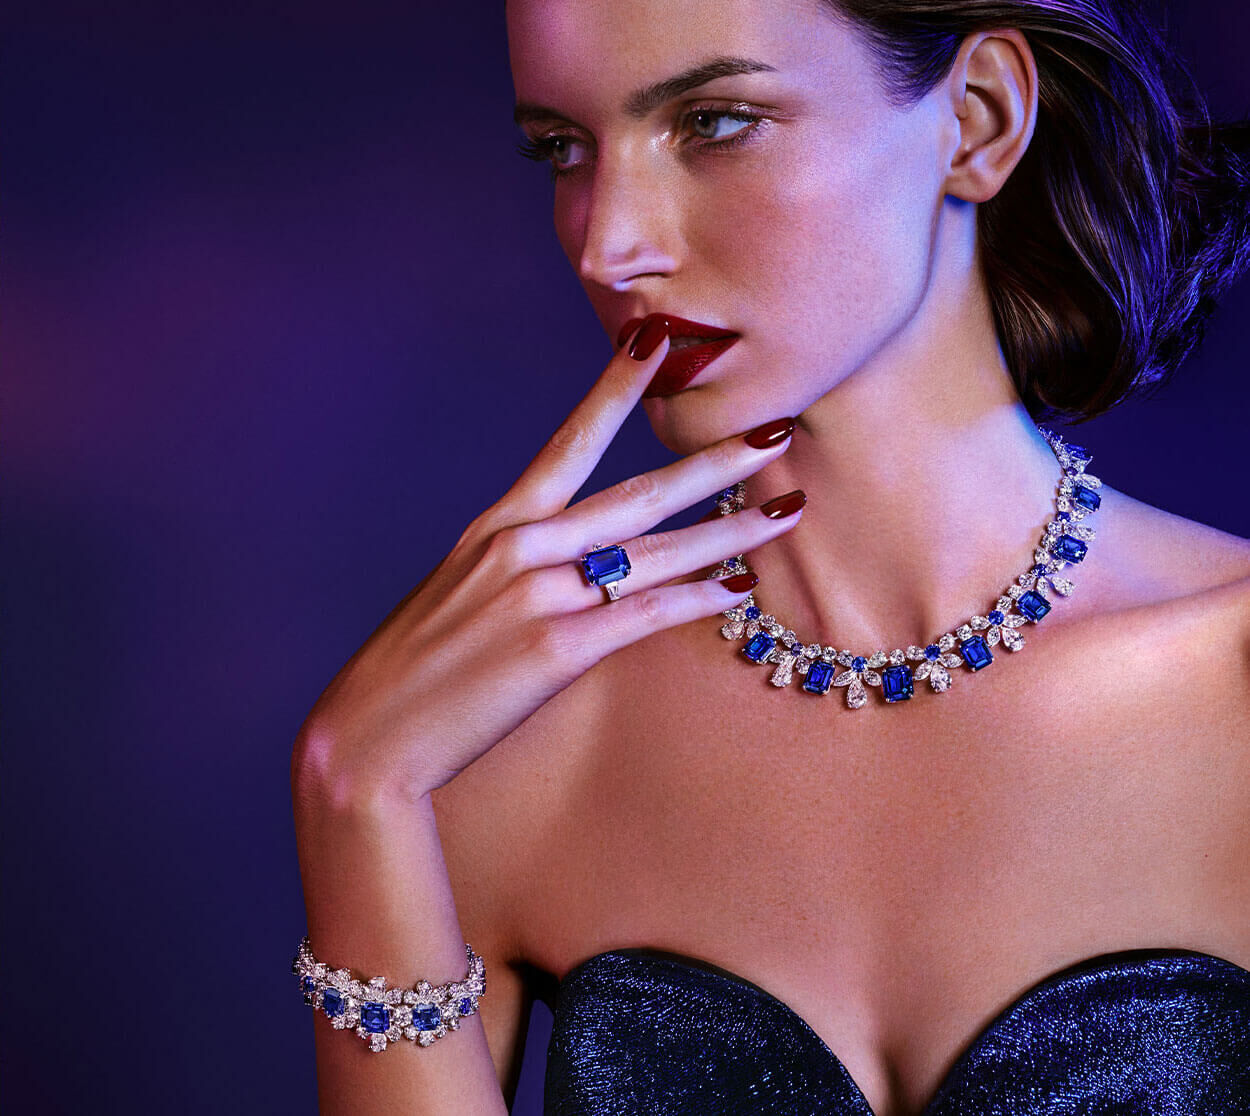 Graff high jewellery Royal Blue sapphire and diamond bracelet Royal Blue sapphire ring and sapphire and diamond necklace and a close up image of the bracelet